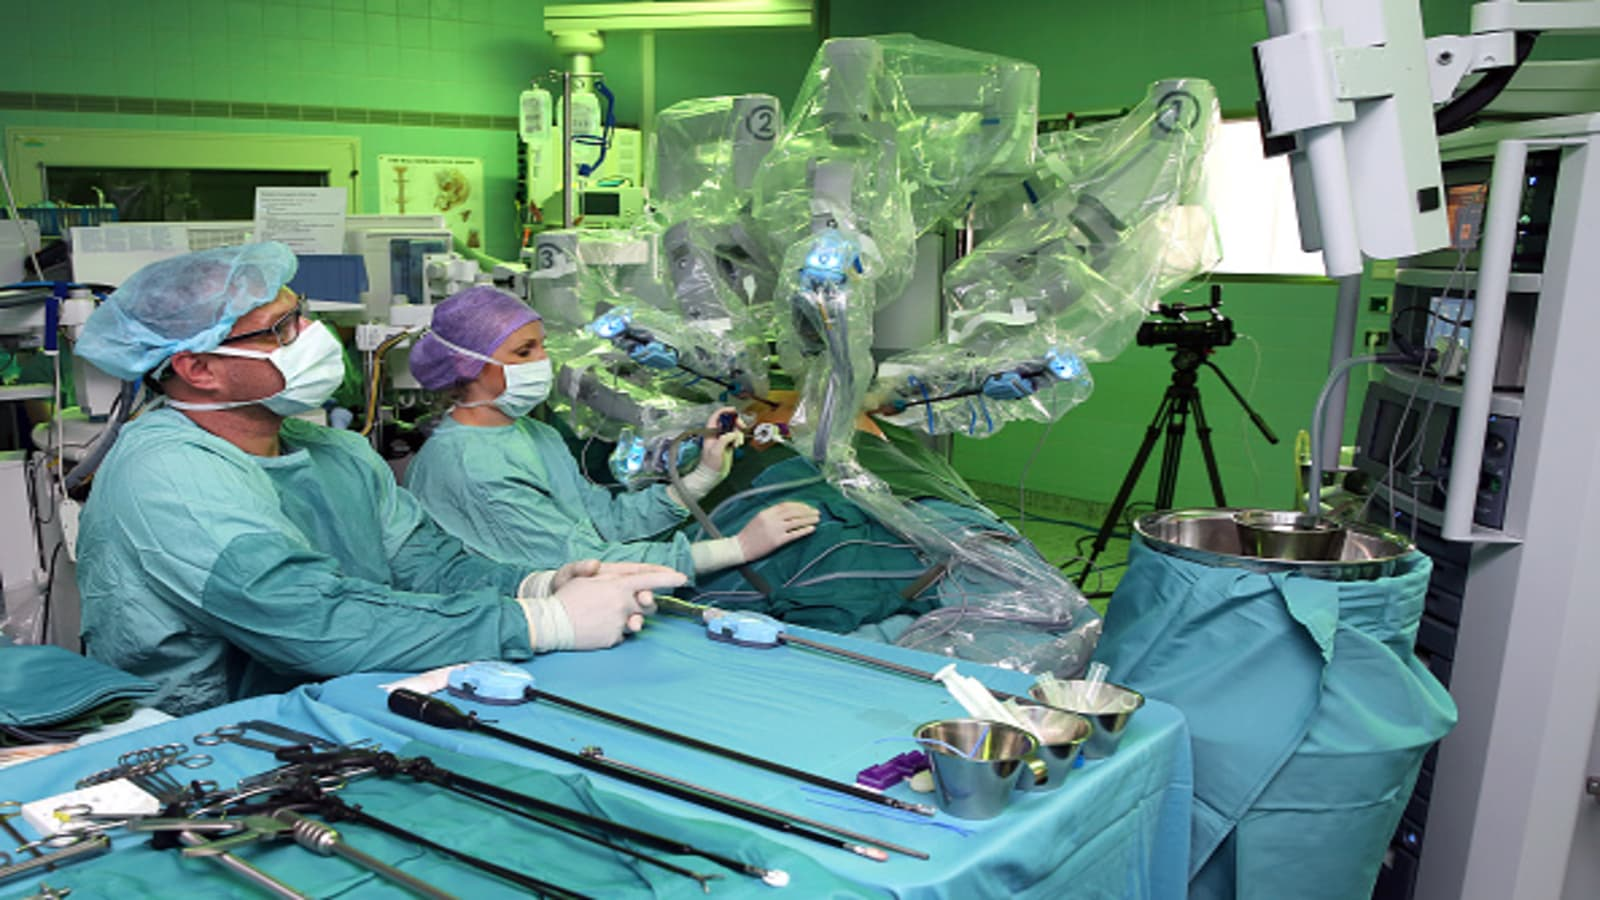 Doctors Are Watching Surgical Procedures On Youtube